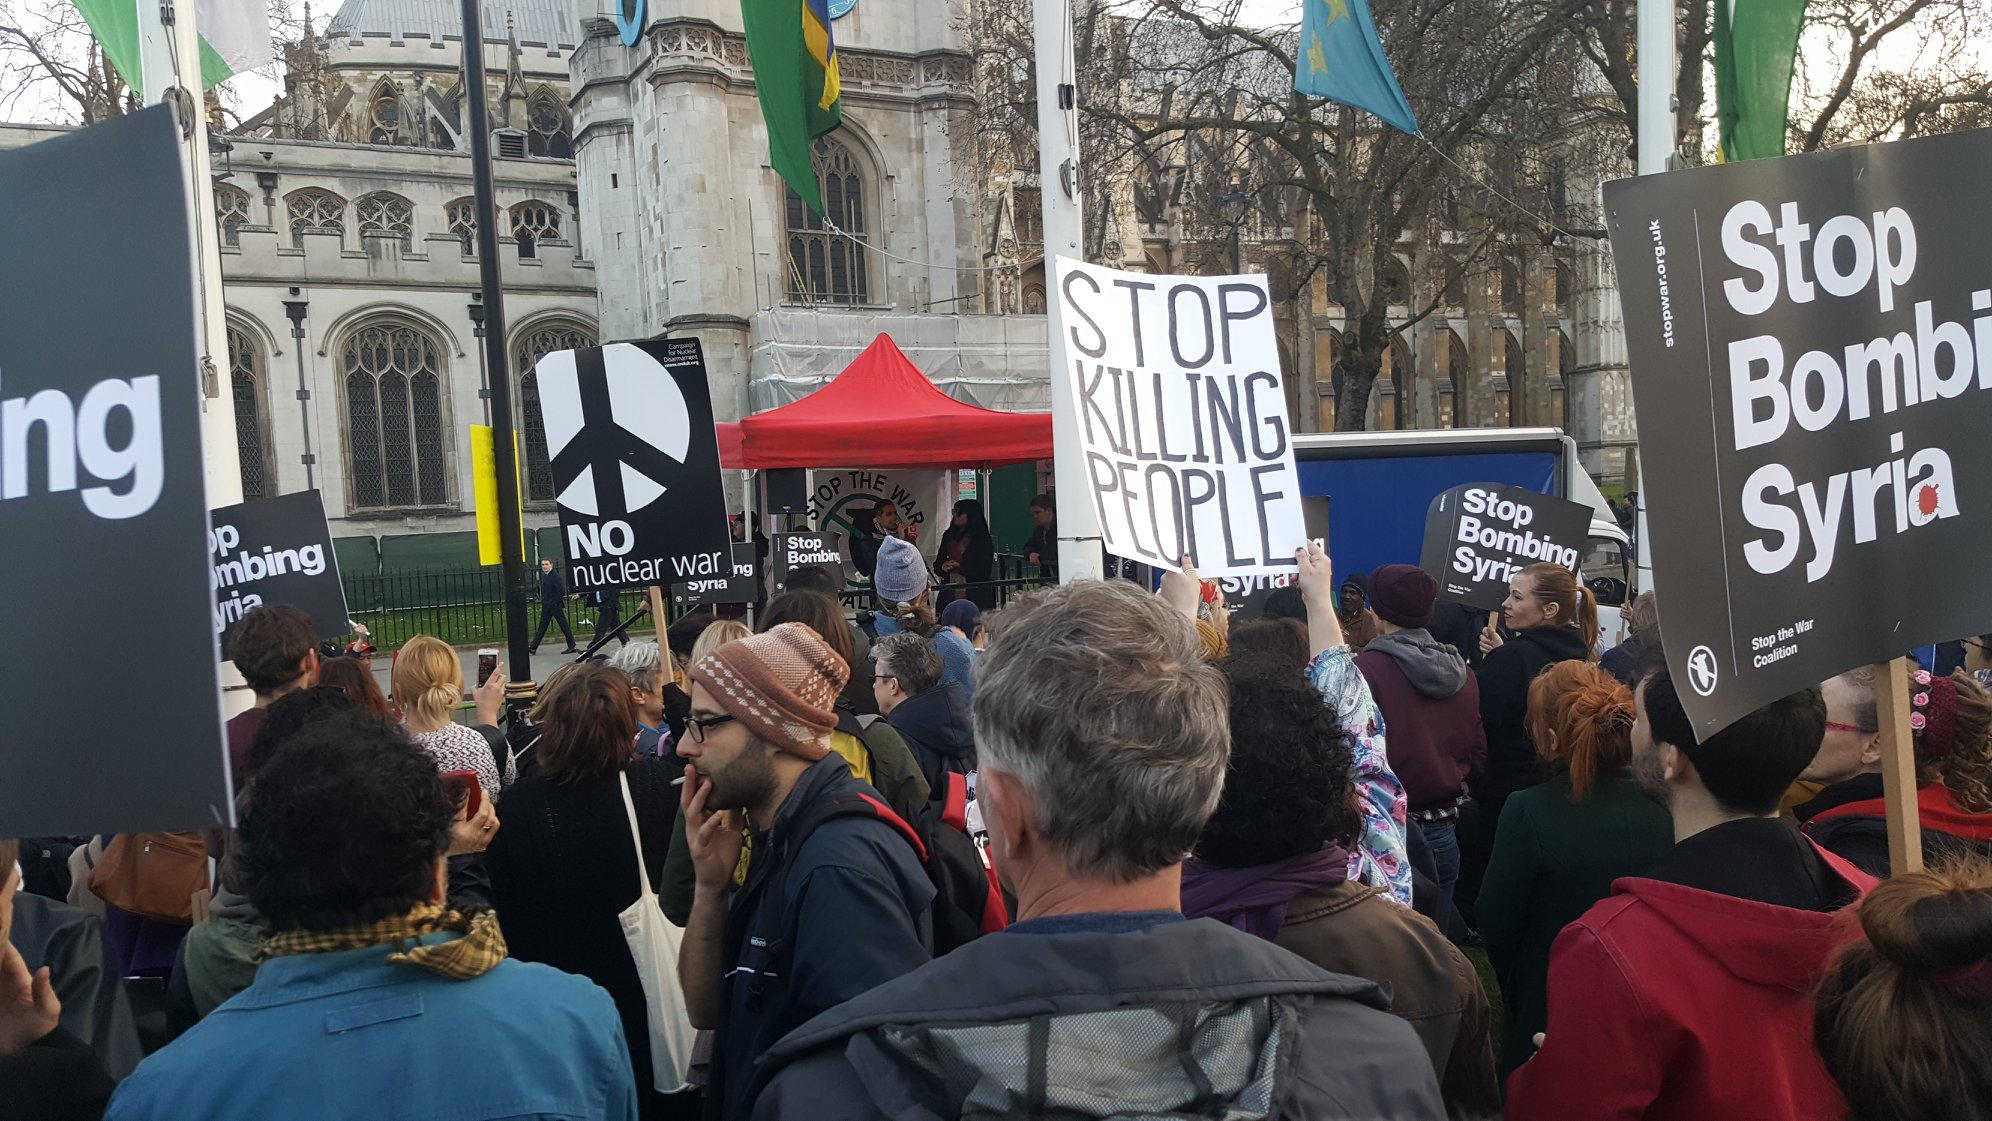 Protestors gathered in Parliament Square outside the Houses of Parliament